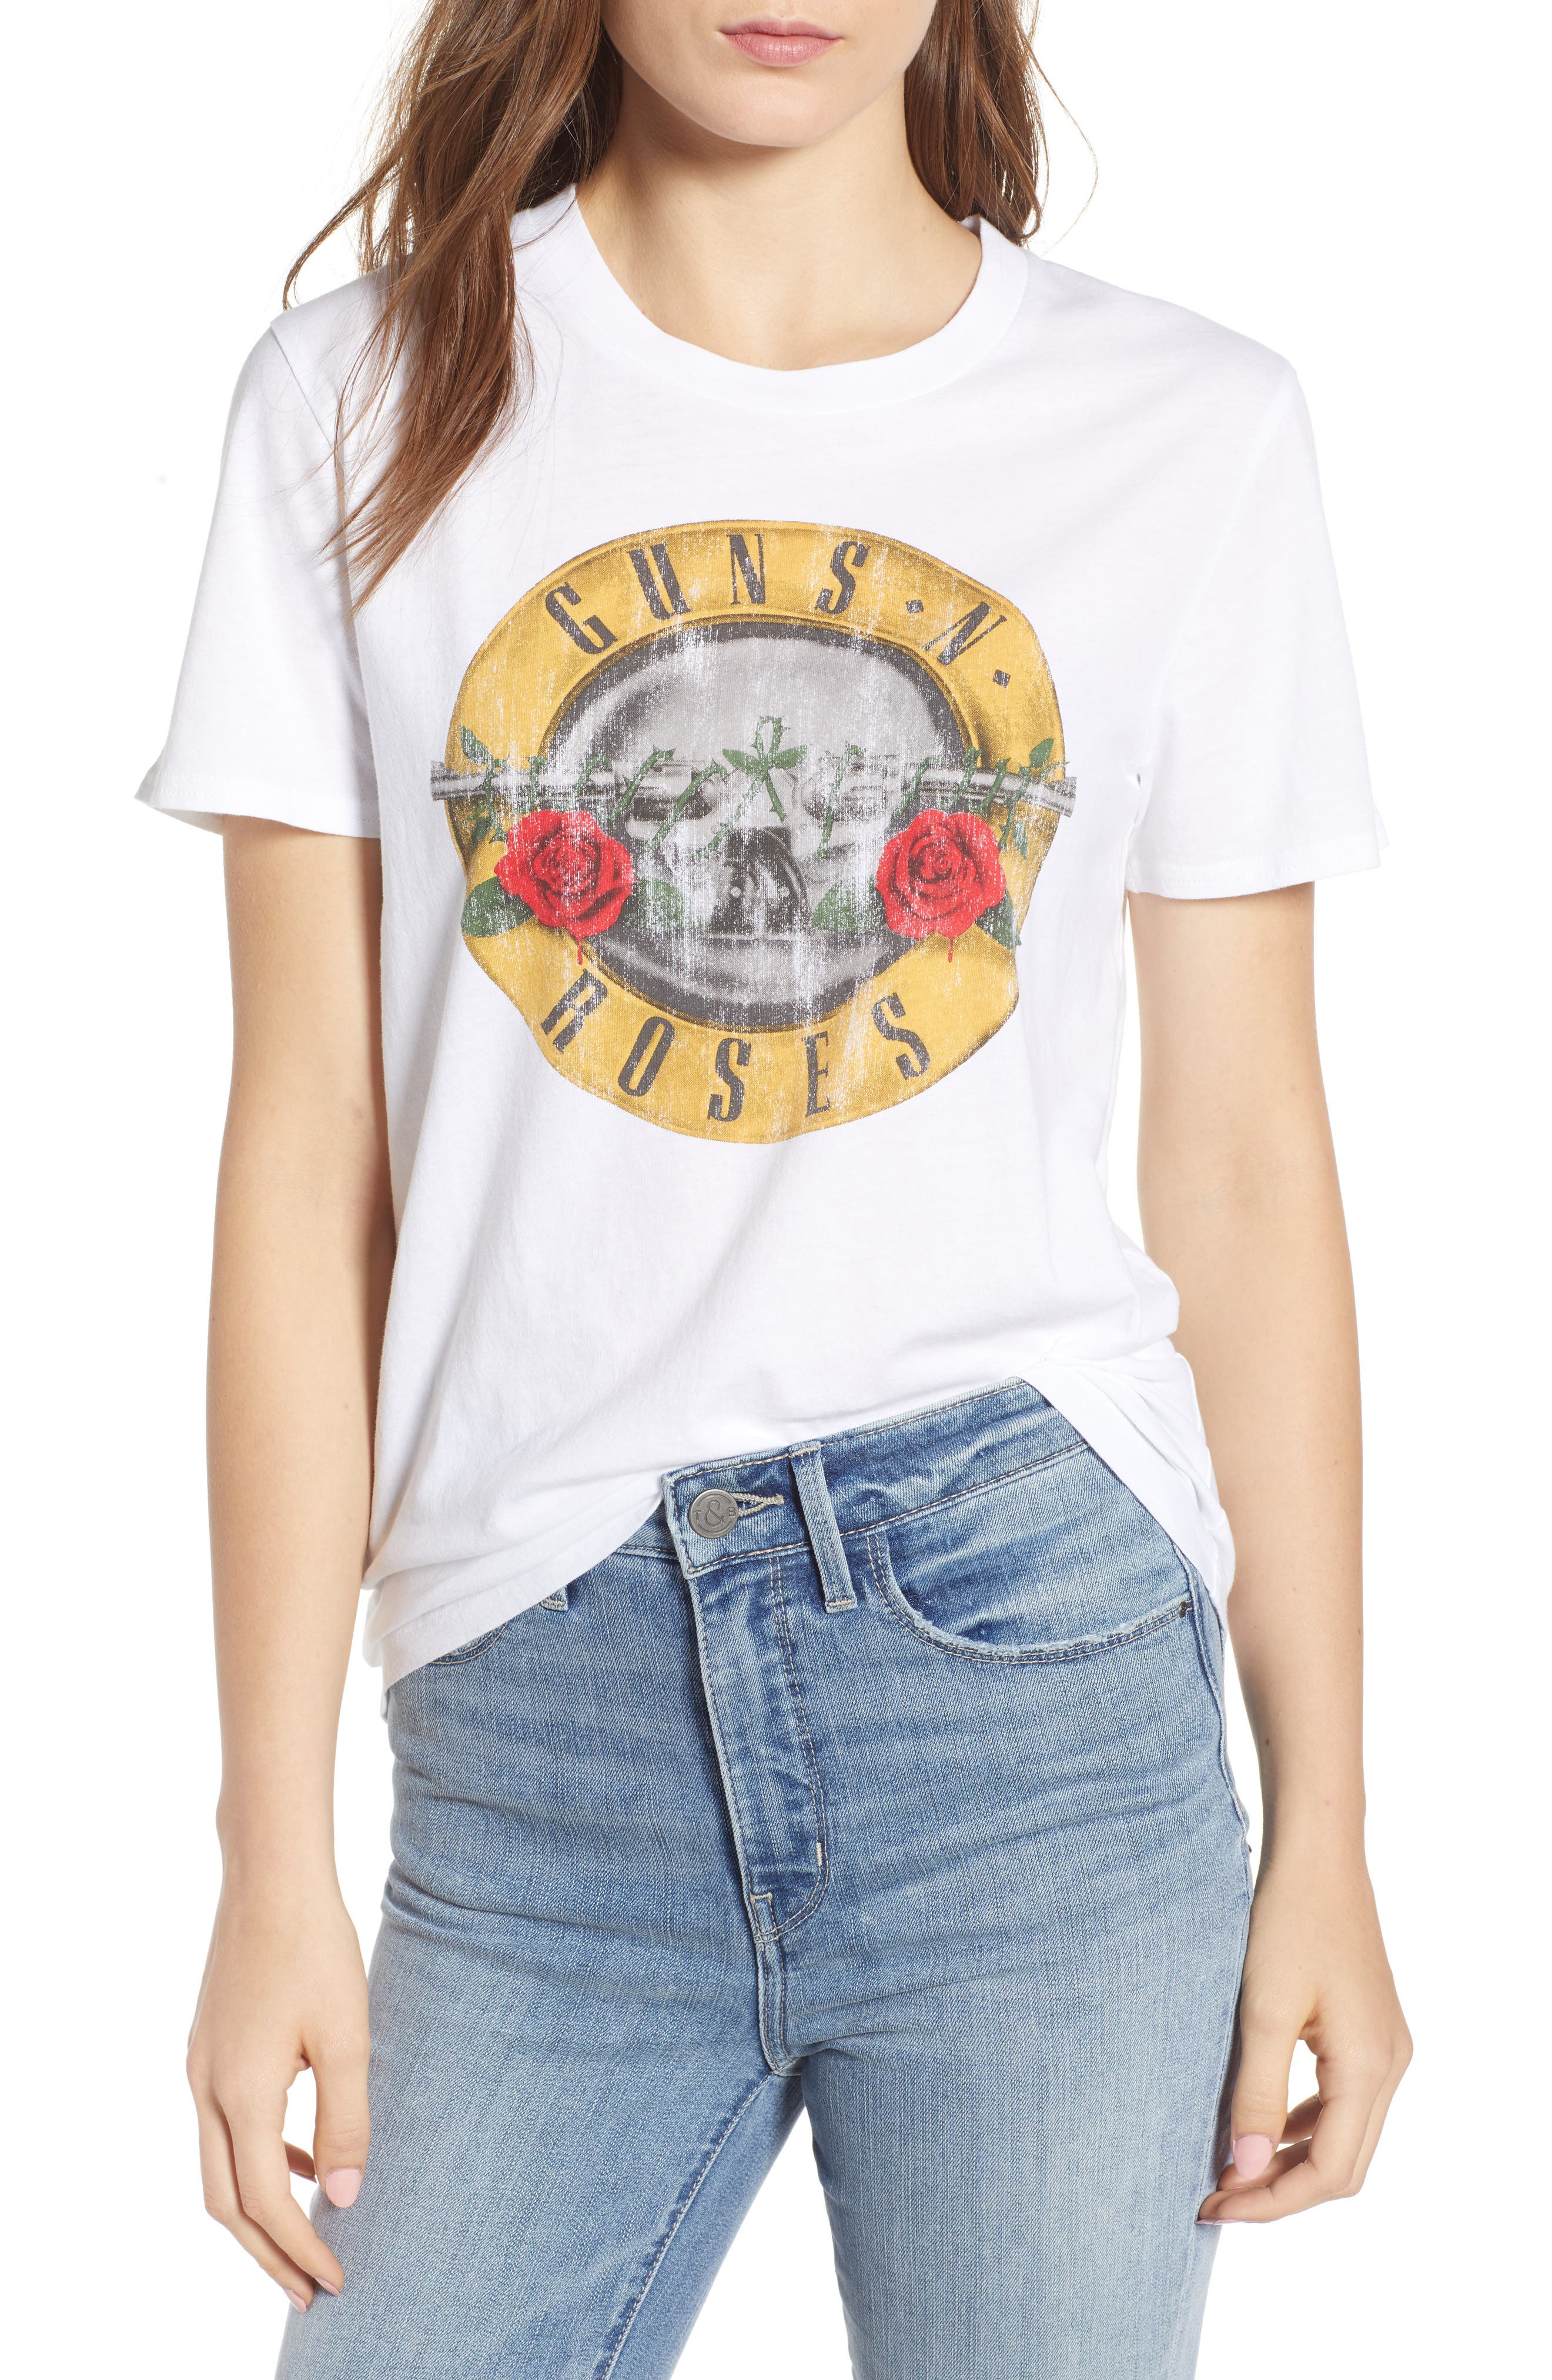 Guns N Roses Graphic Tee,                         Main,                         color, White Combo